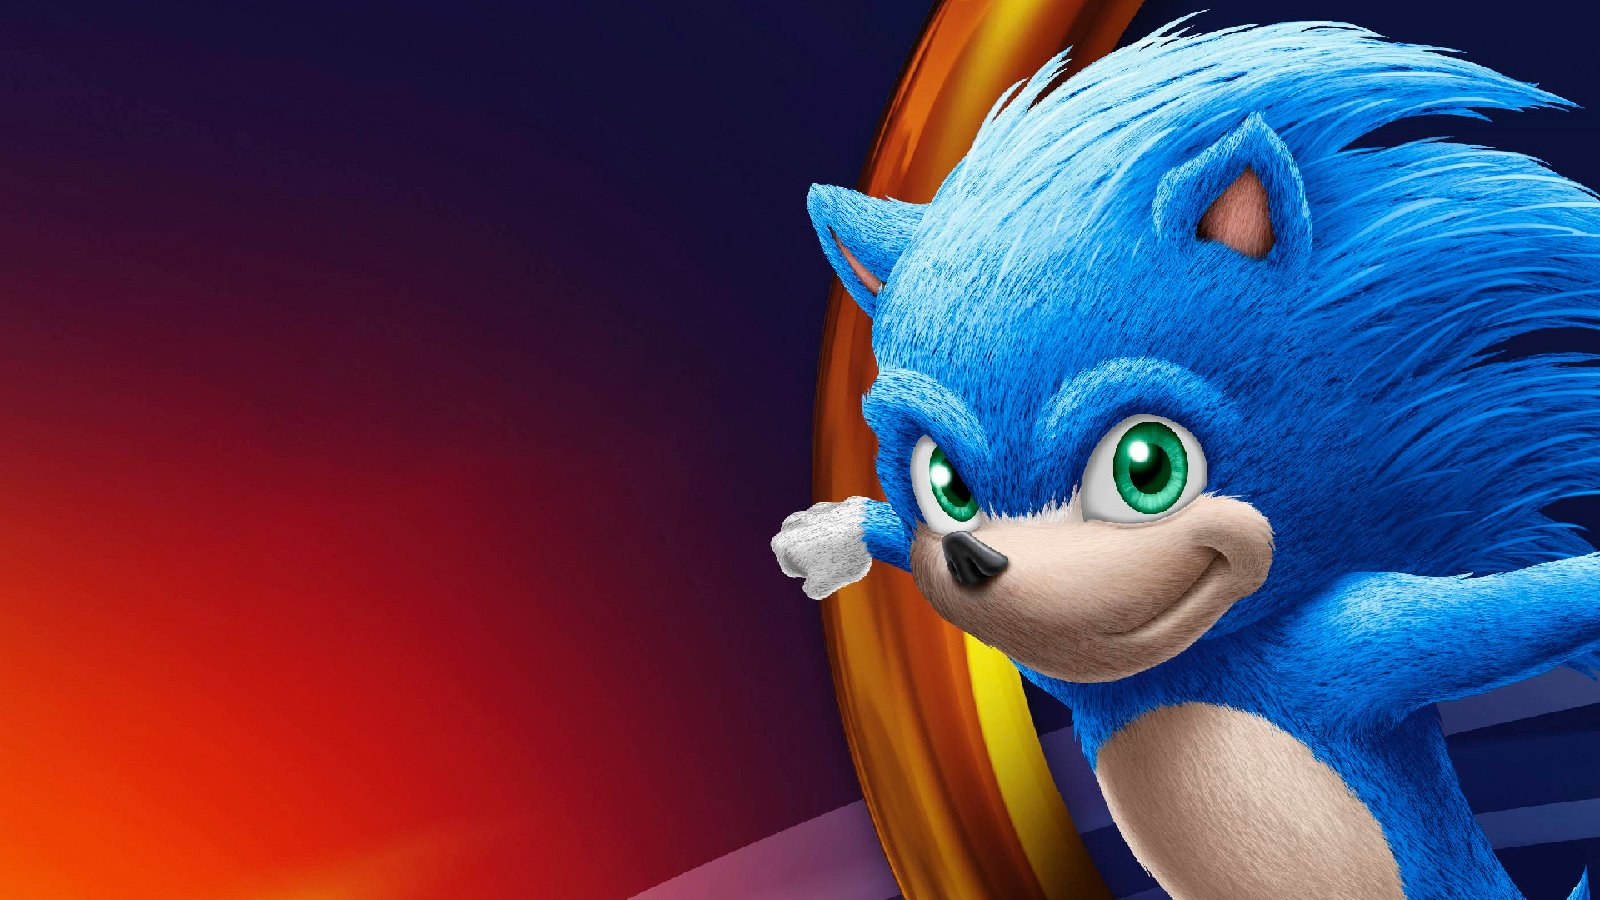 Sonic The Hedgehog S Movie Design Sure Is Something